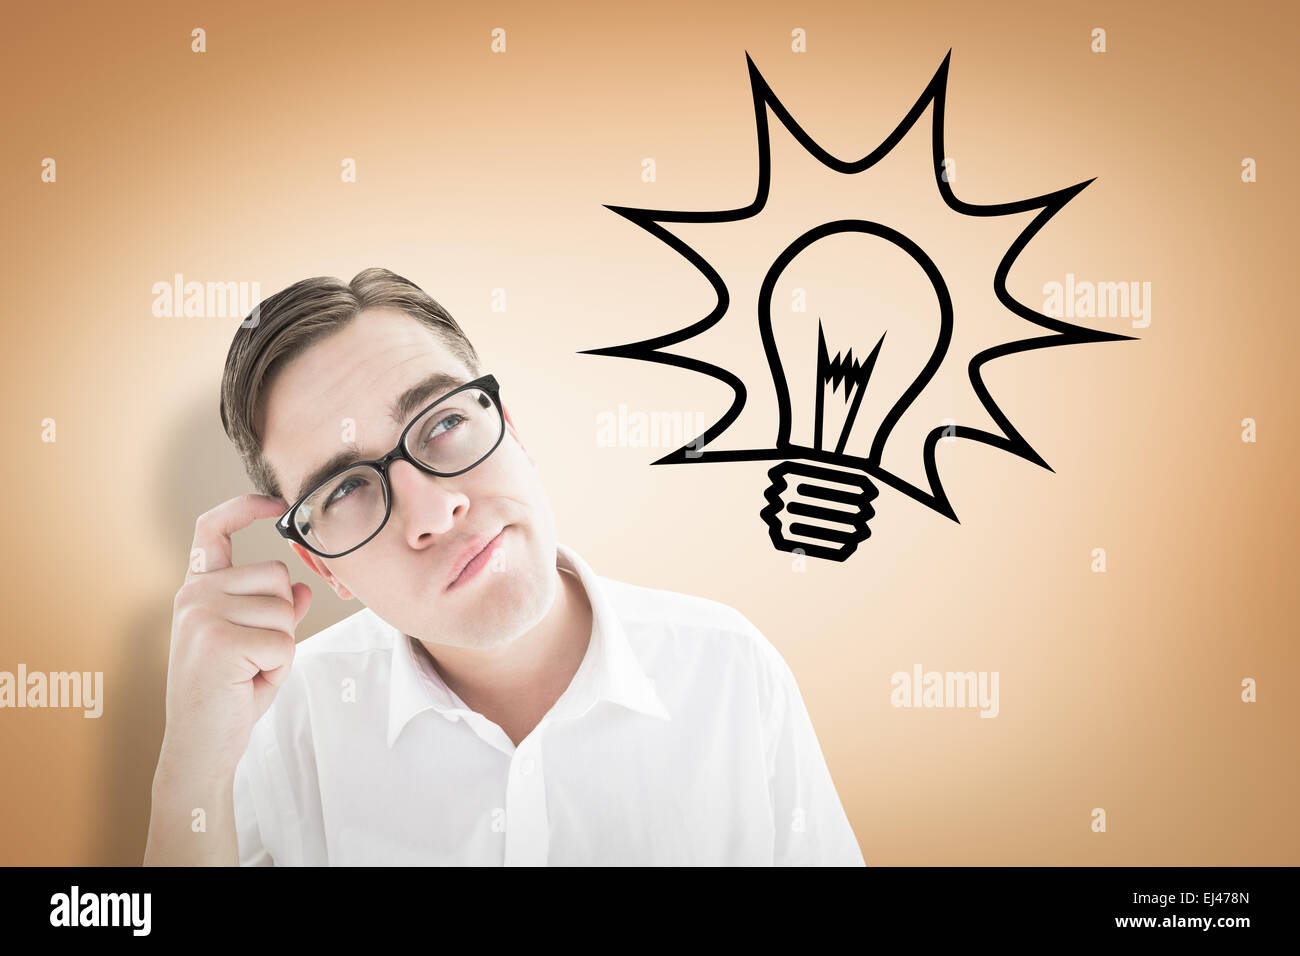 Composite image of geeky businessman scratching his head - Stock Image